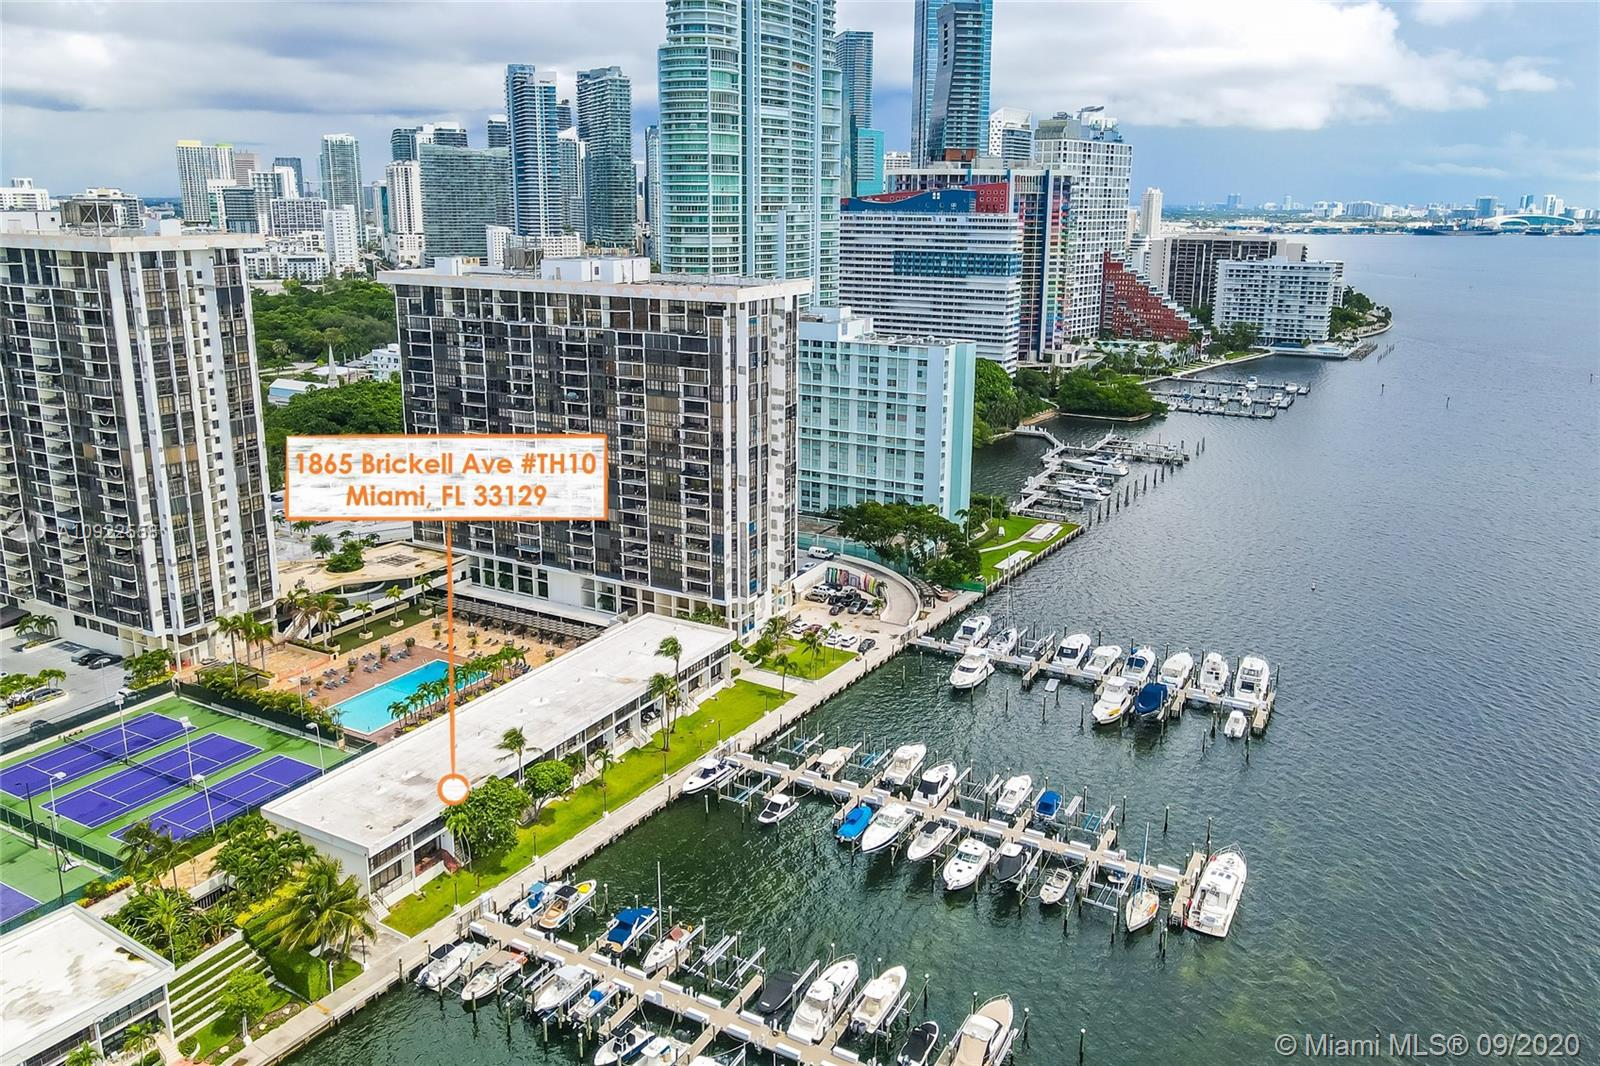 Fantastic townhouse right on Biscayne Bay facing Rickenbacker causeway. Partially remodeled. Two covered private parking spaces. The townhouse gives you the independence of a private home with the comfort of a first class condominium. Experience living next to the water in the heart of Miami Brickell Area. Second bedroom has been divided in 2 smaller rooms. Owner financing available, Condo expenses have been capped.